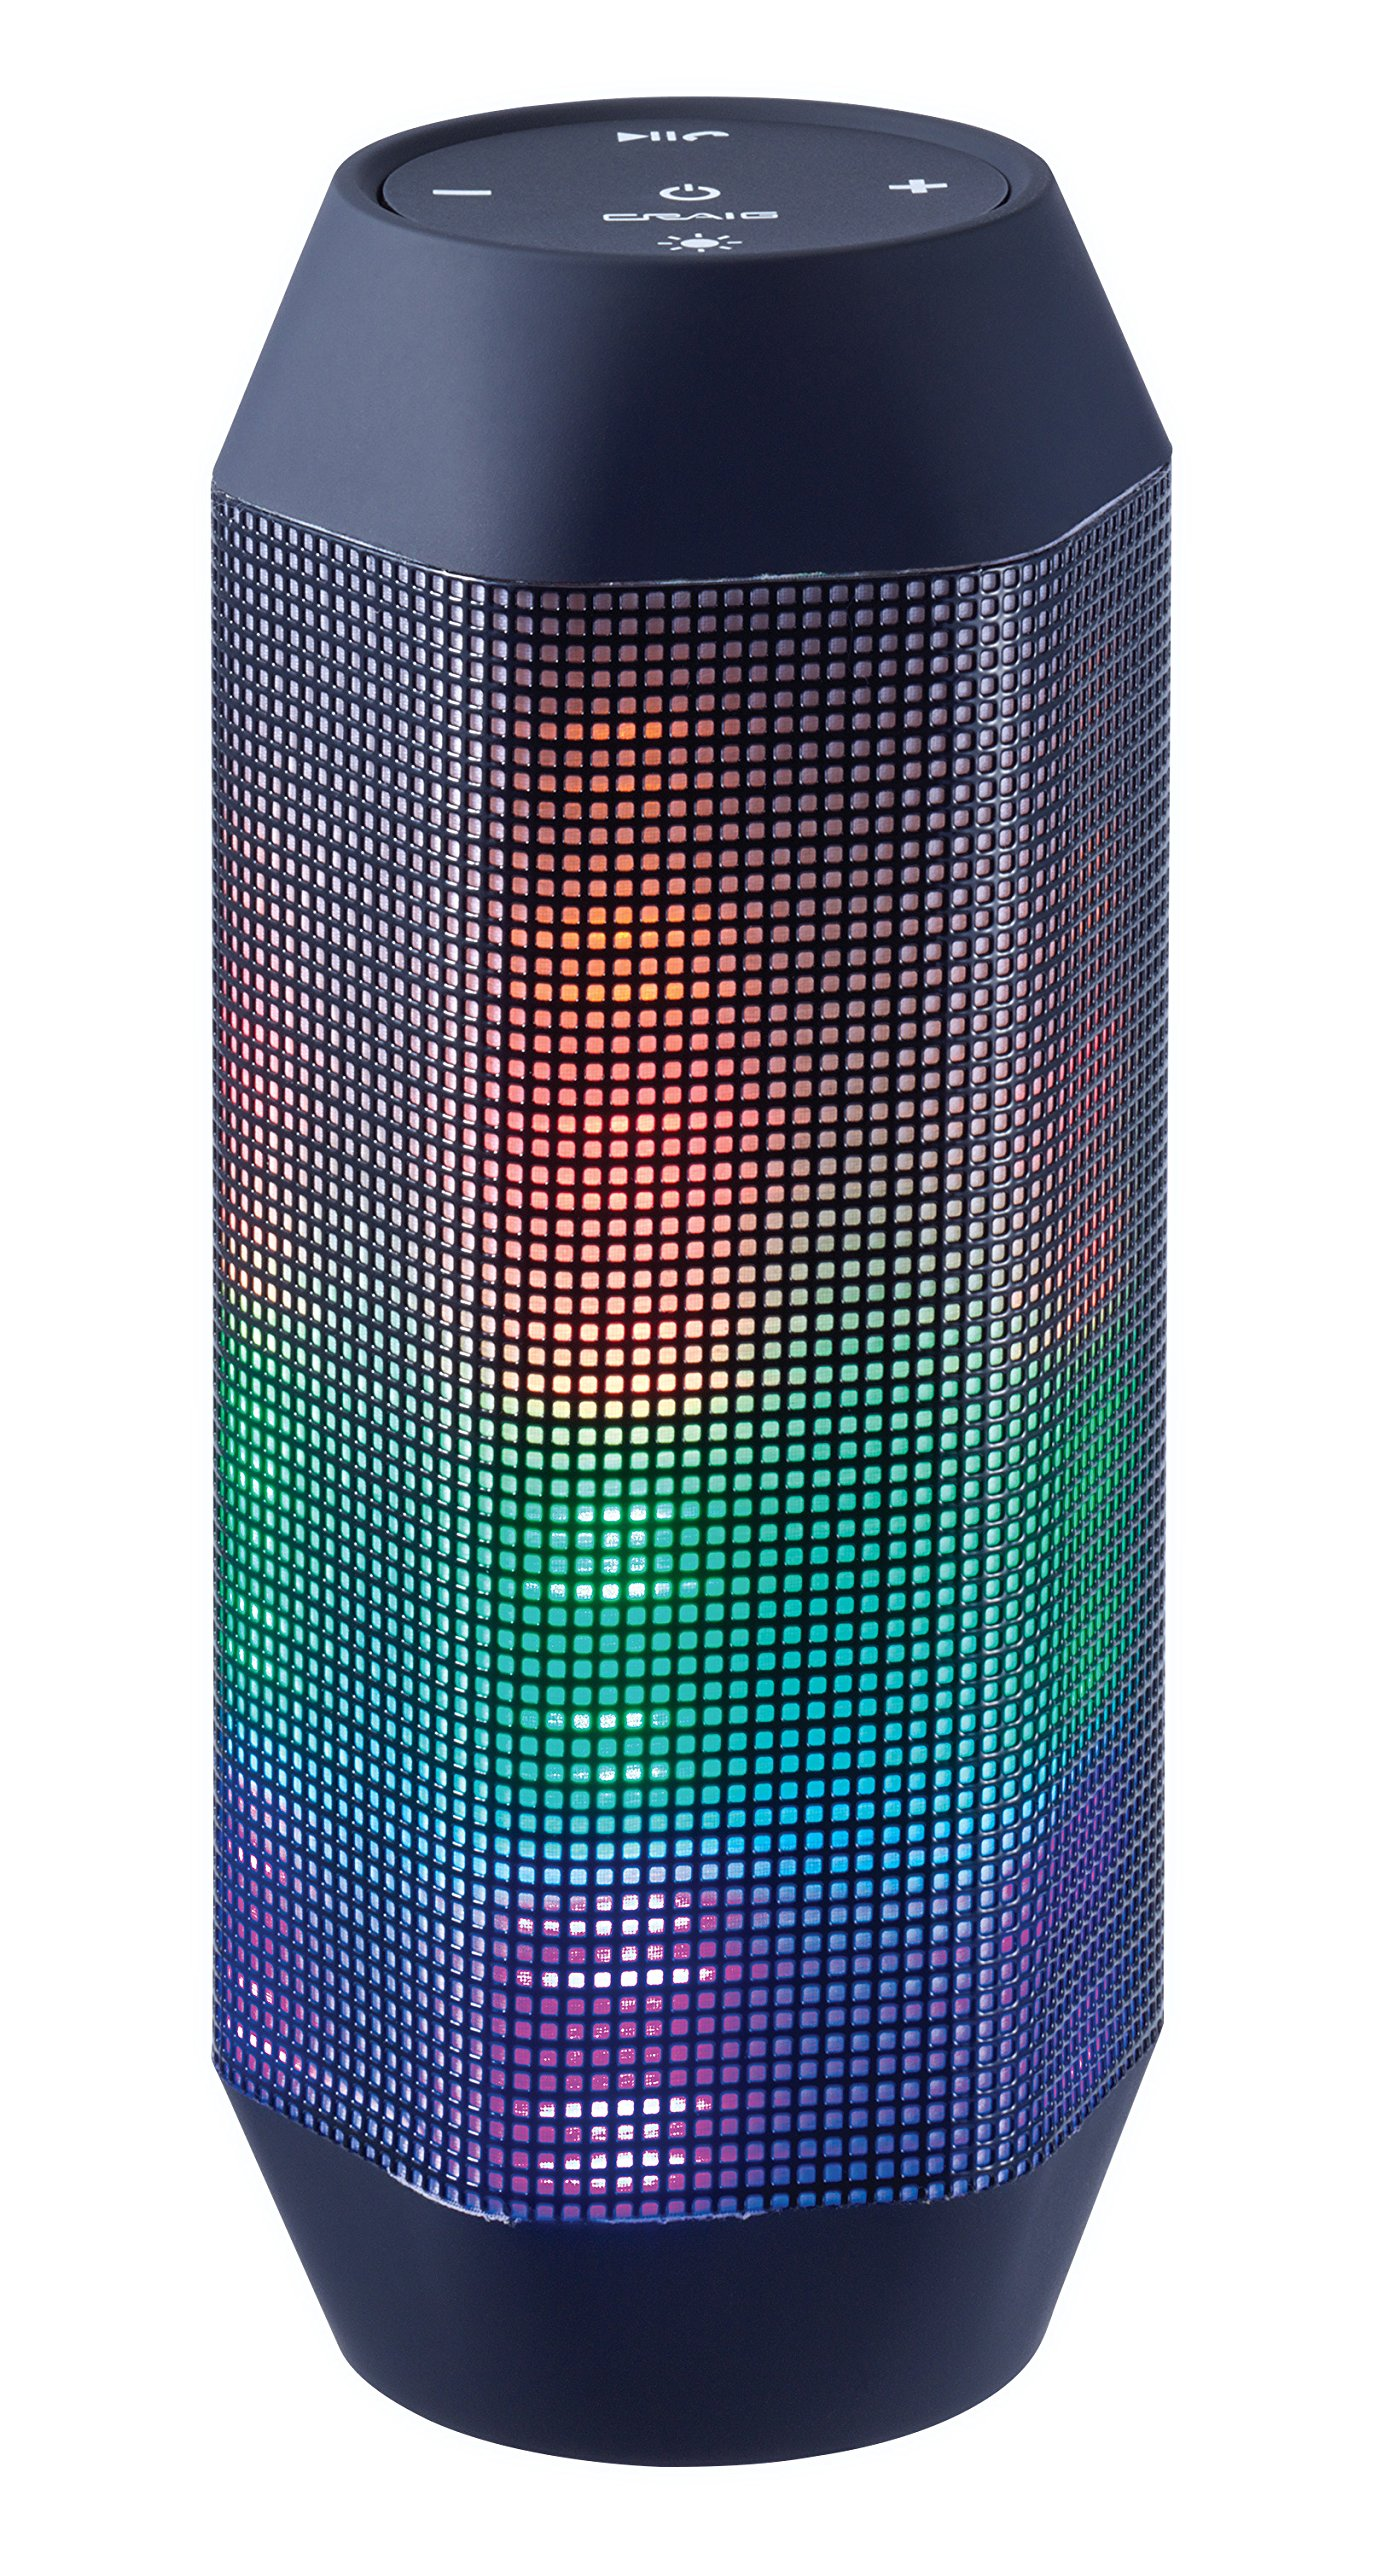 Craig Electronics CMA3594-OD Stereo Portable Speaker with...